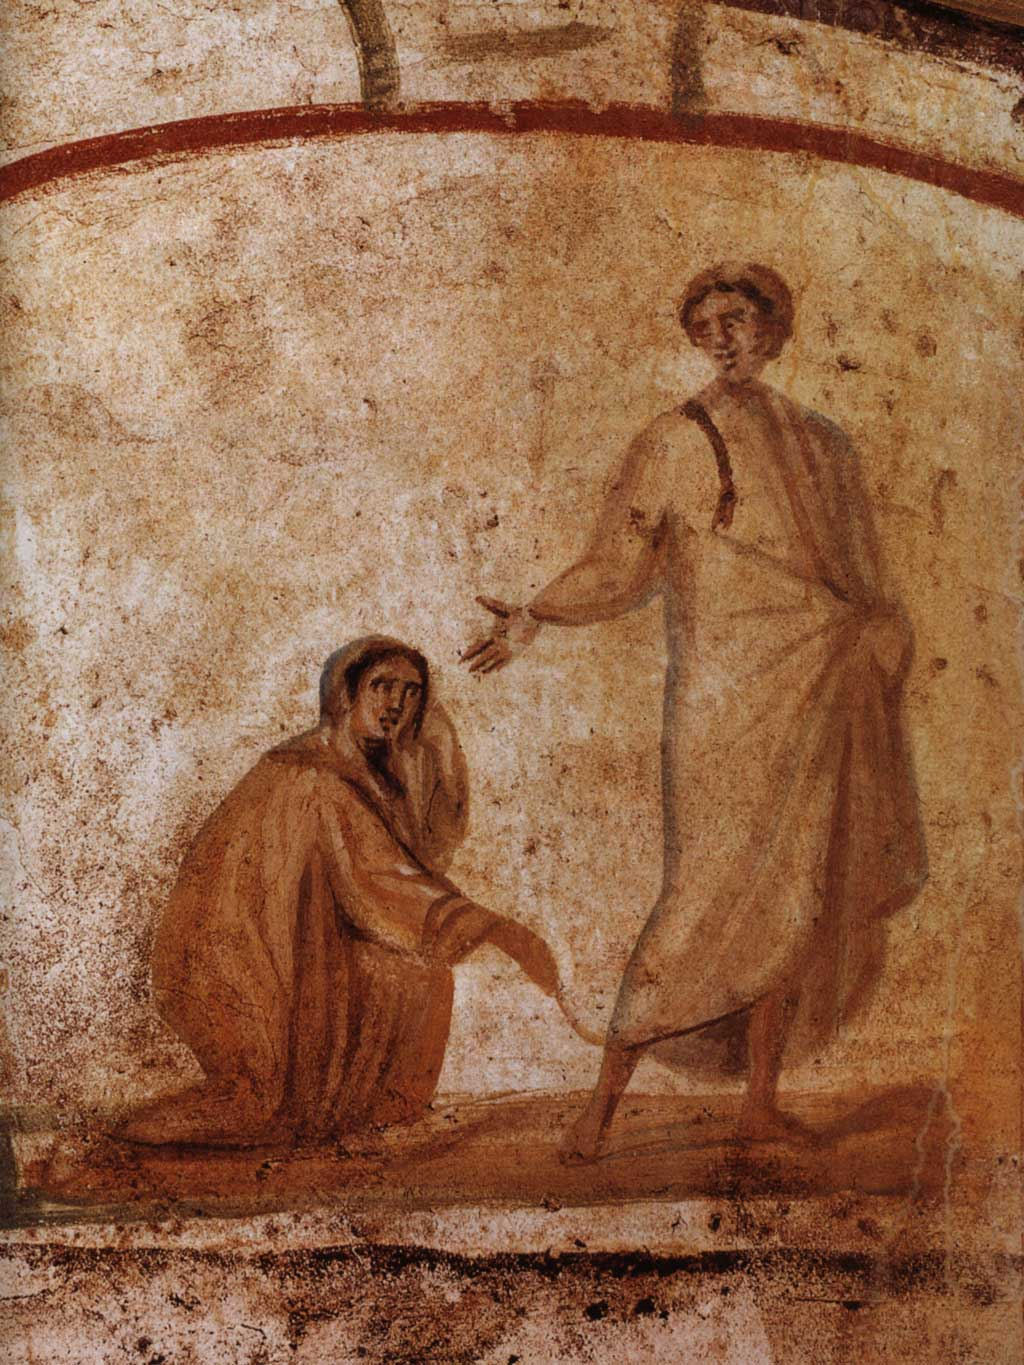 Fresco of a woman reaching for the bottom of Jesus's robe while Jesus turns around to acknowledge her presence.